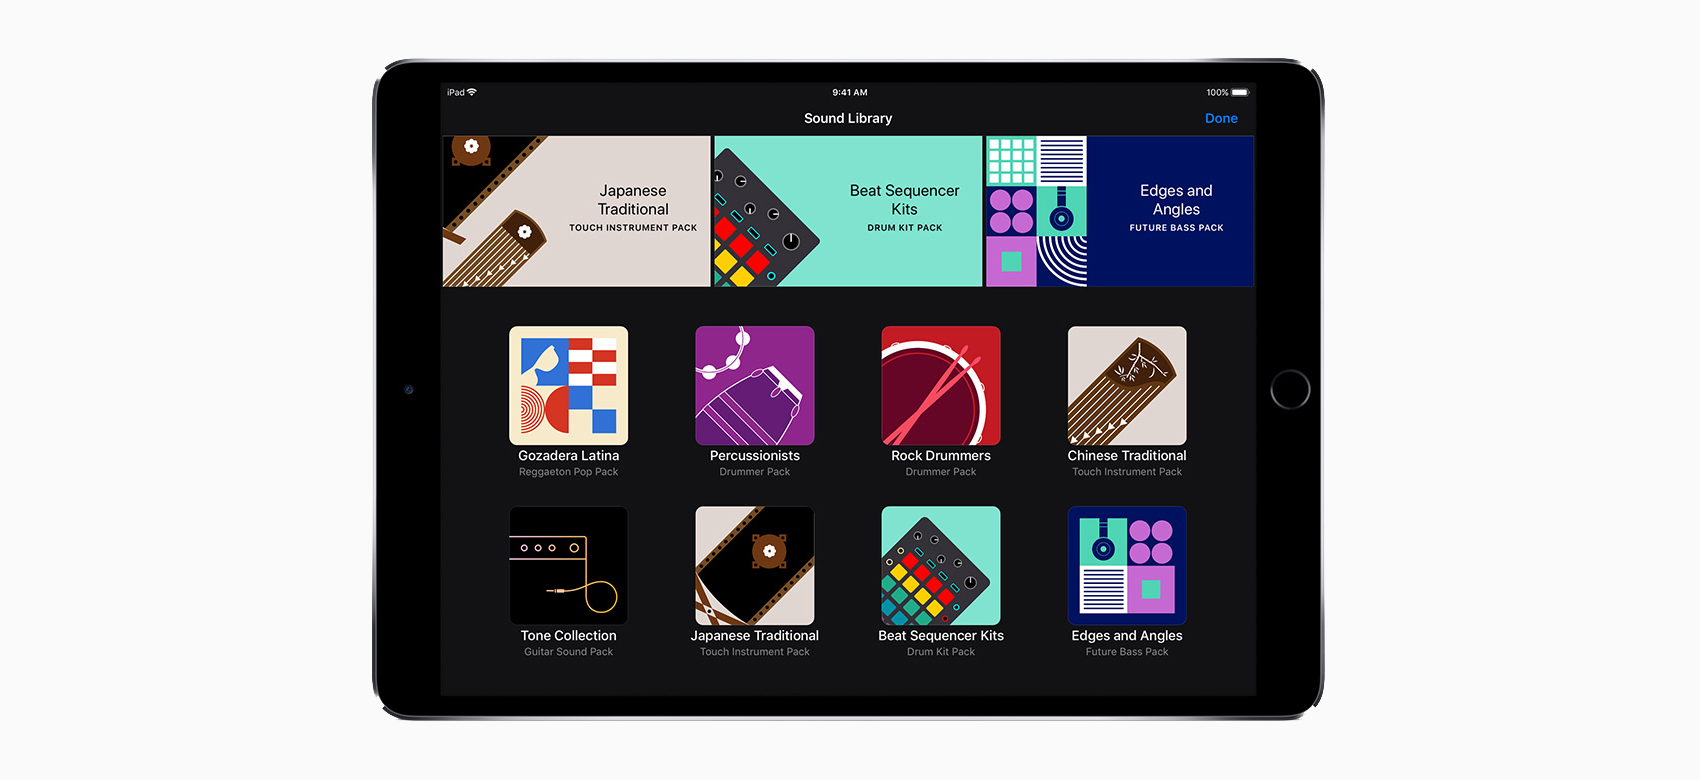 Garageband For Ios Update Brings A New Sound Library And